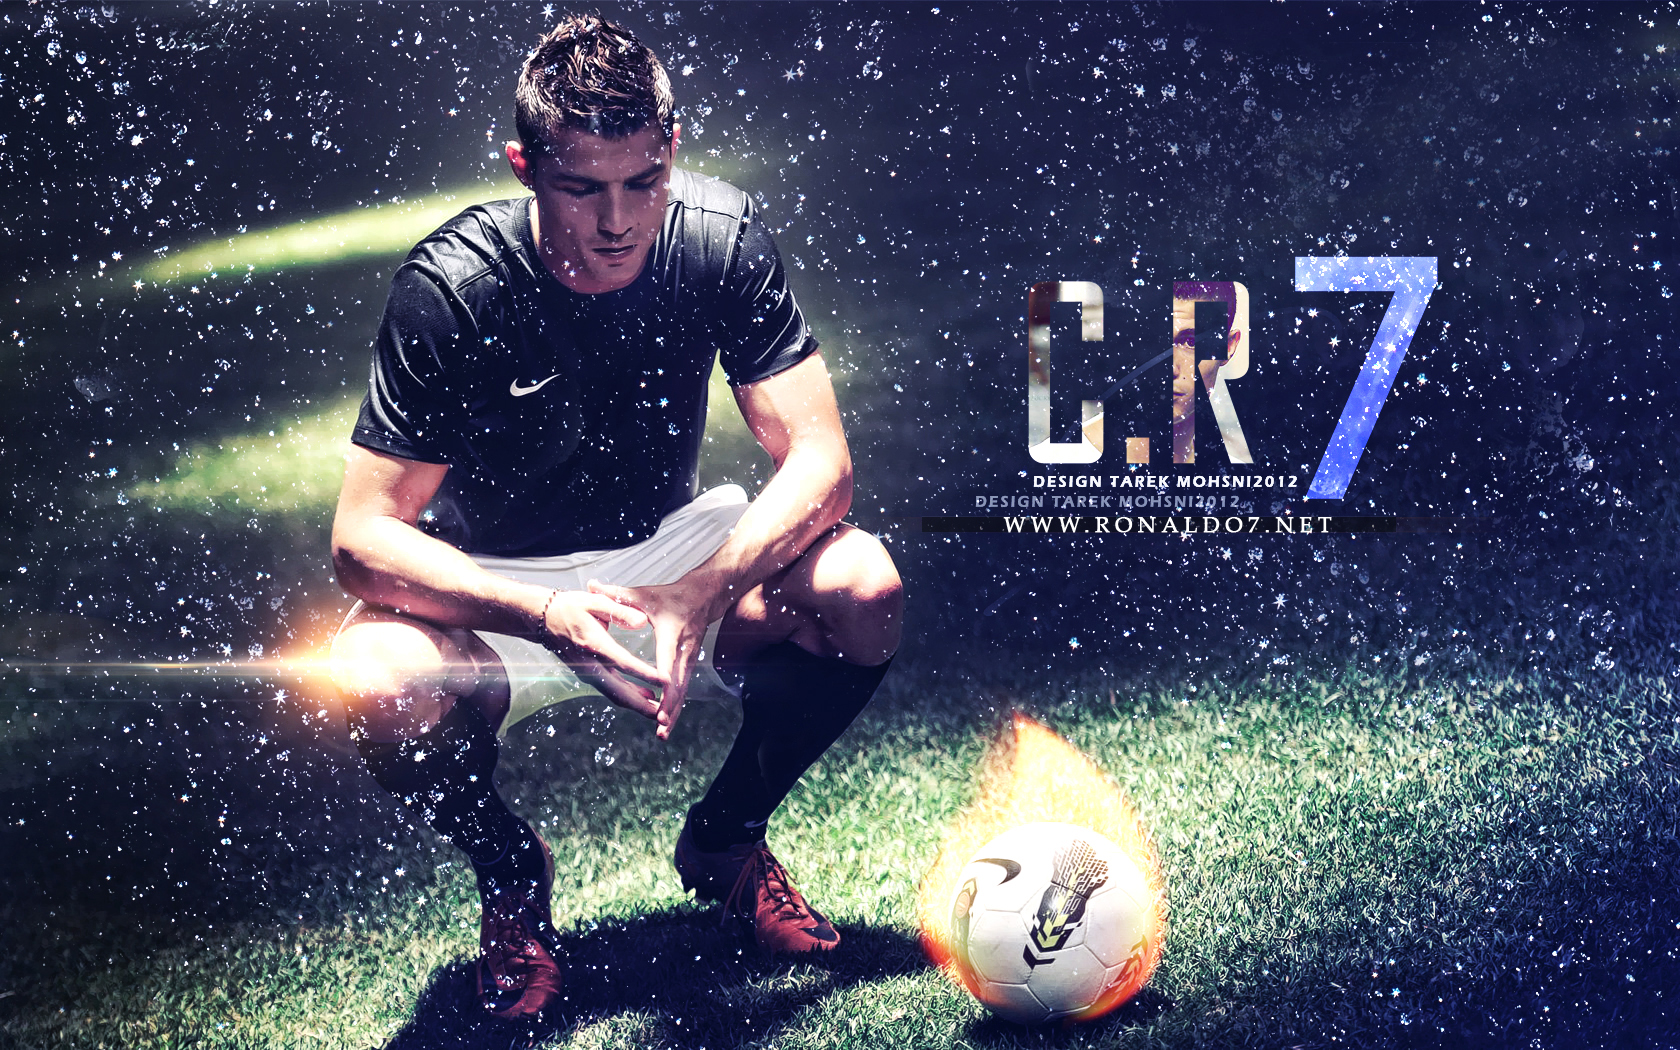 Cr7 Wallpaper Hd: Cristiano Ronaldo Or CR7 Picture Image Wallpaper Full HD